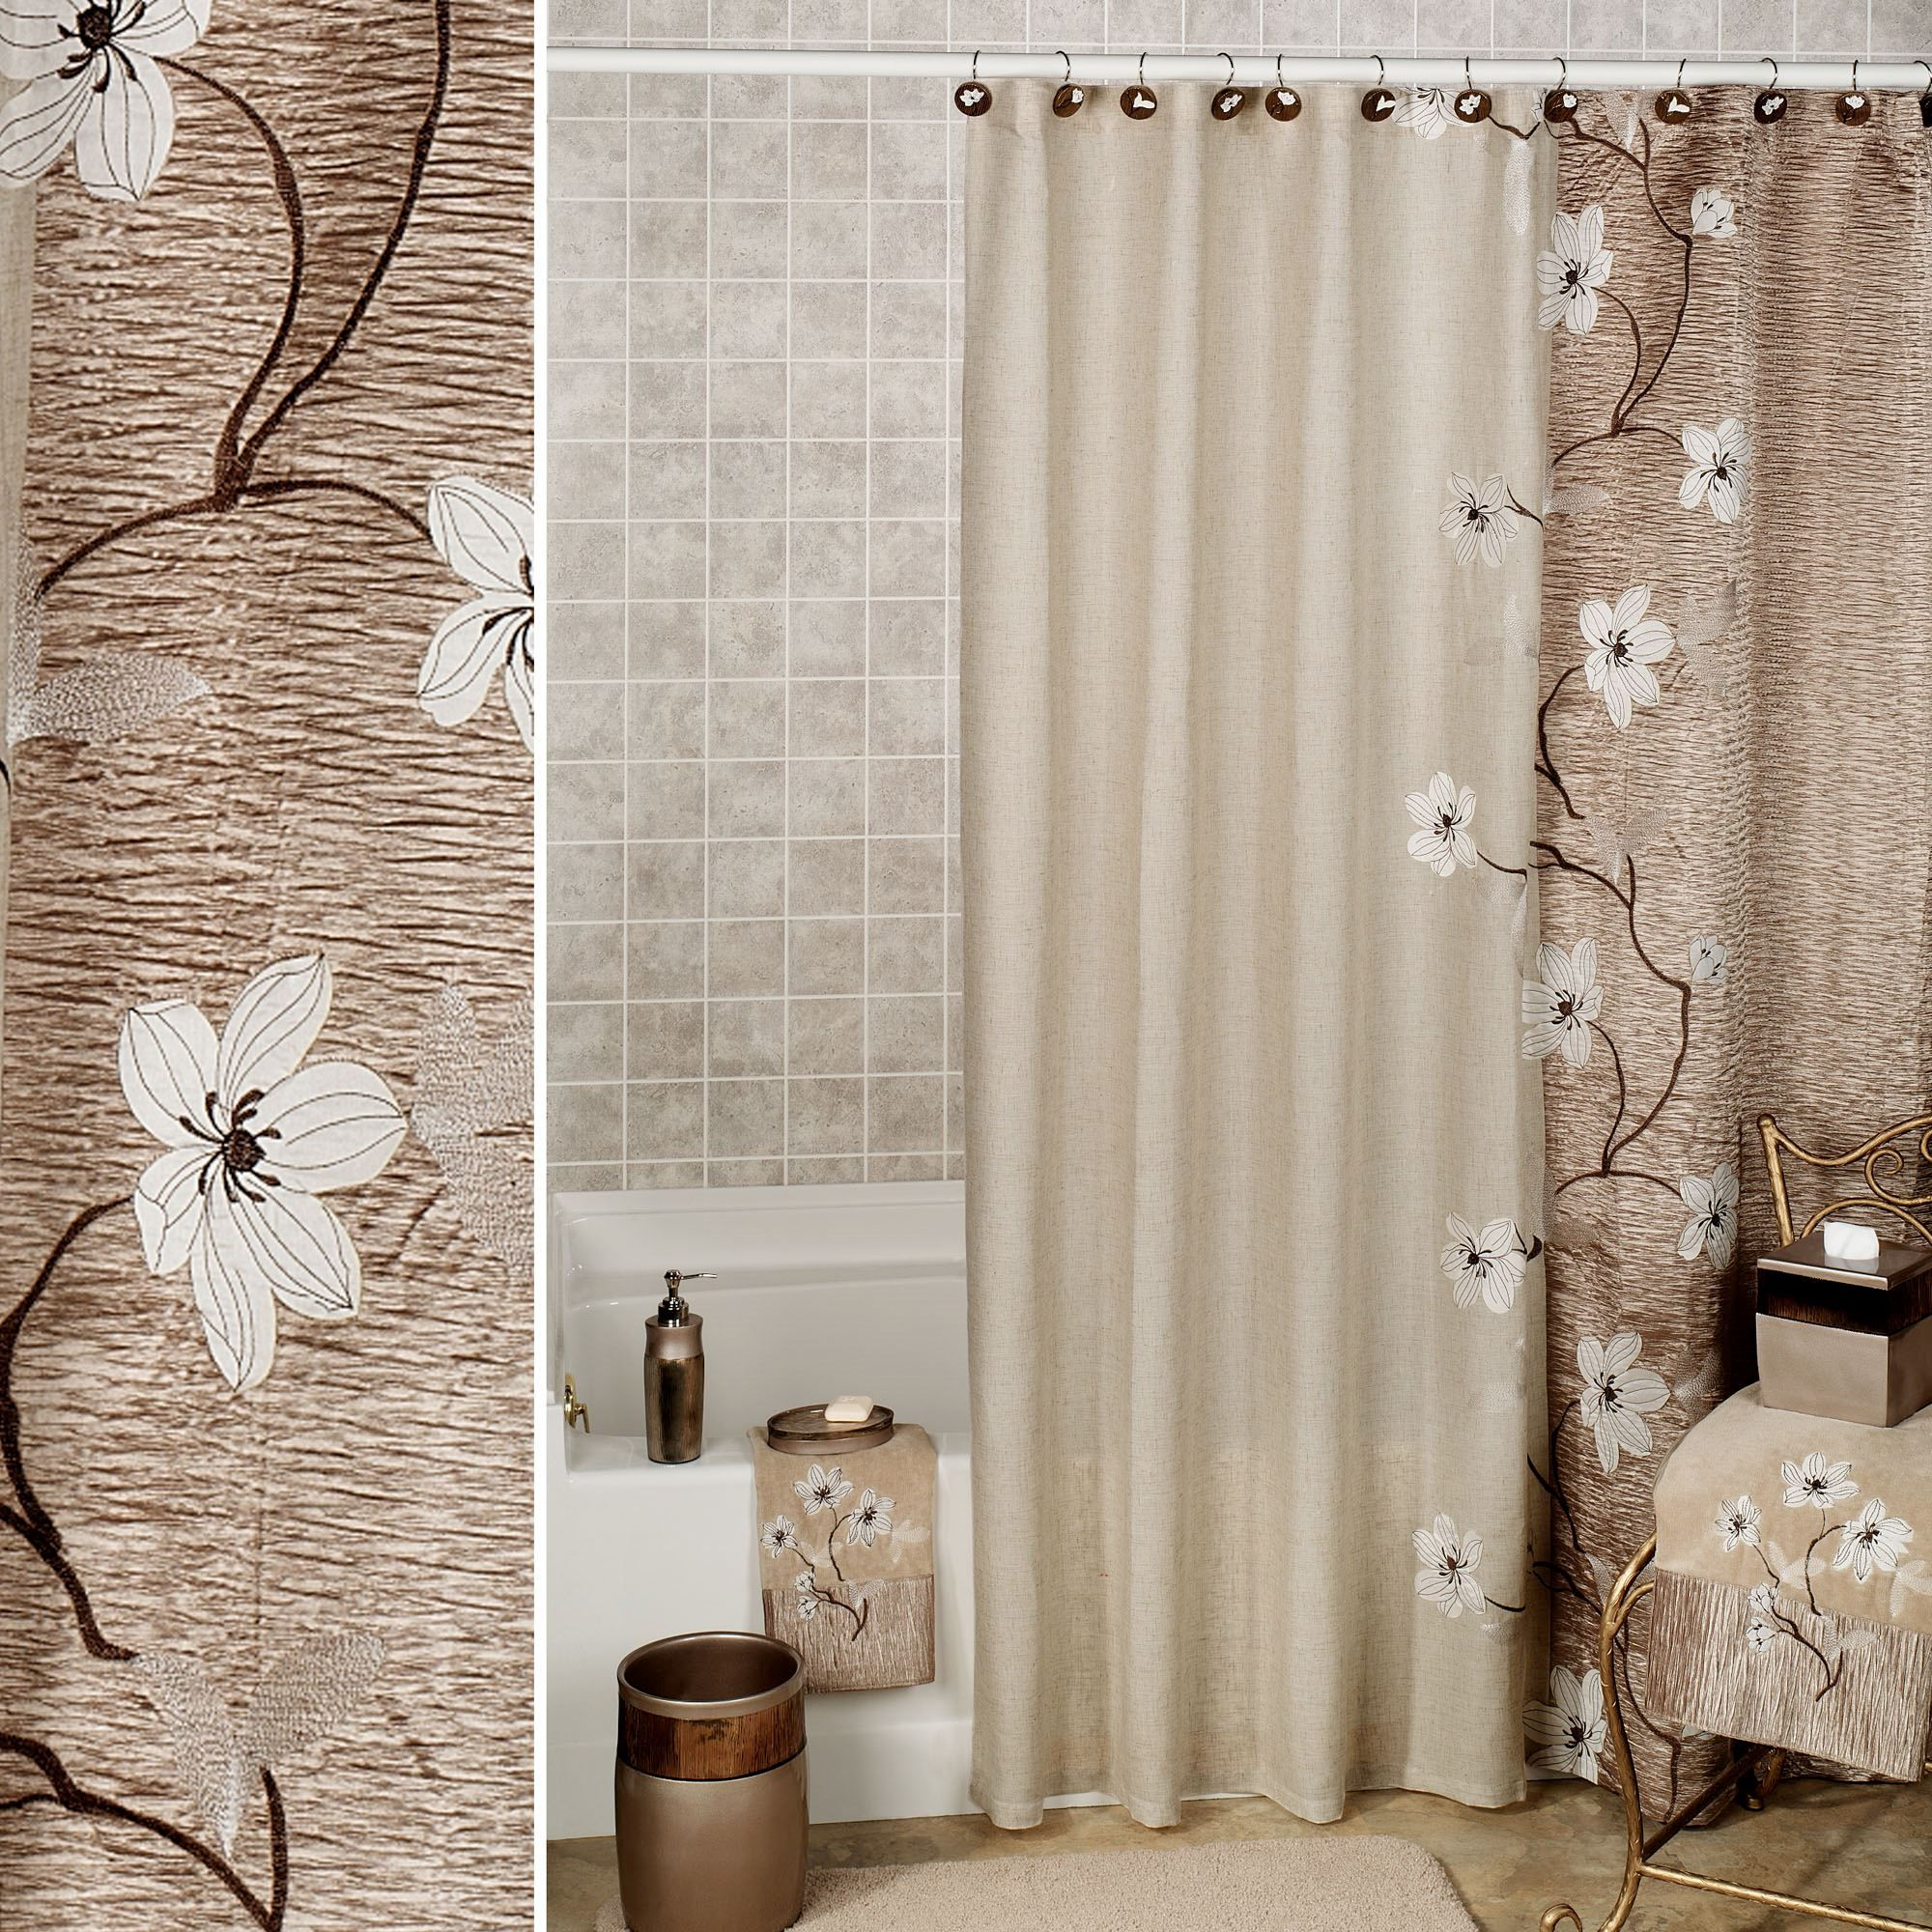 Magnolia Floral Shower Curtain By Croscill With Images Target